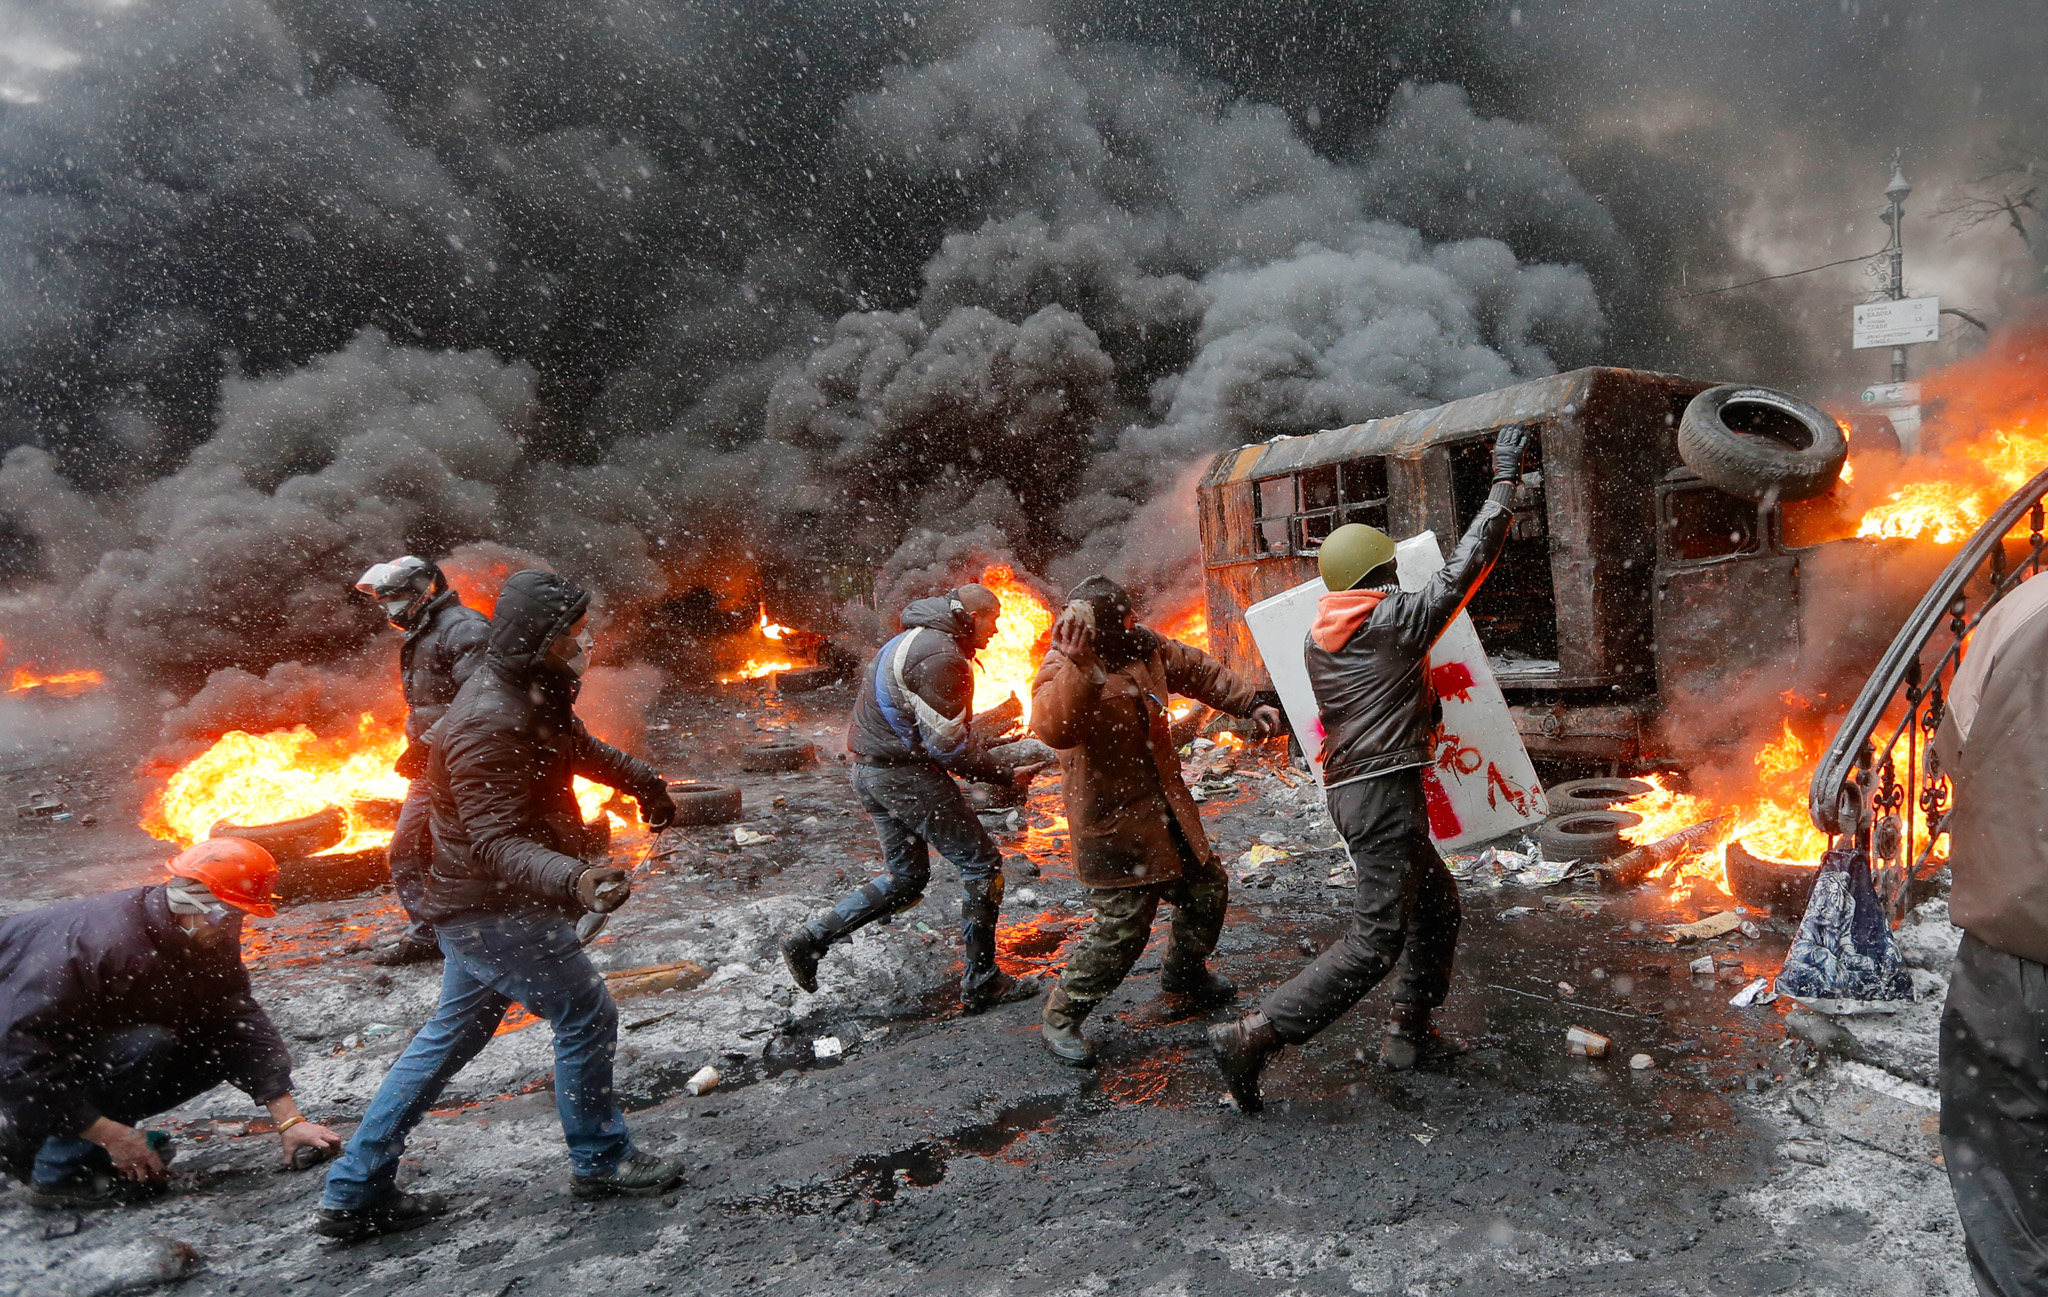 Protesters clash with police in central Kiev, Ukraine, Wednesday, Jan. 22, 2014. Three people have died in clashes between protesters and police in the Ukrainian capital Wednesday, according to medics on the site, in a development that will likely escalate Ukraine's two month-long political crisis. The mass protests in the capital of Kiev erupted after Ukrainian President Viktor Yanukovych spurned a pact with the European Union in favor of close ties with Russia, which offered him a $15 billion bailout. (AP Photo/Efrem Lukatsky)